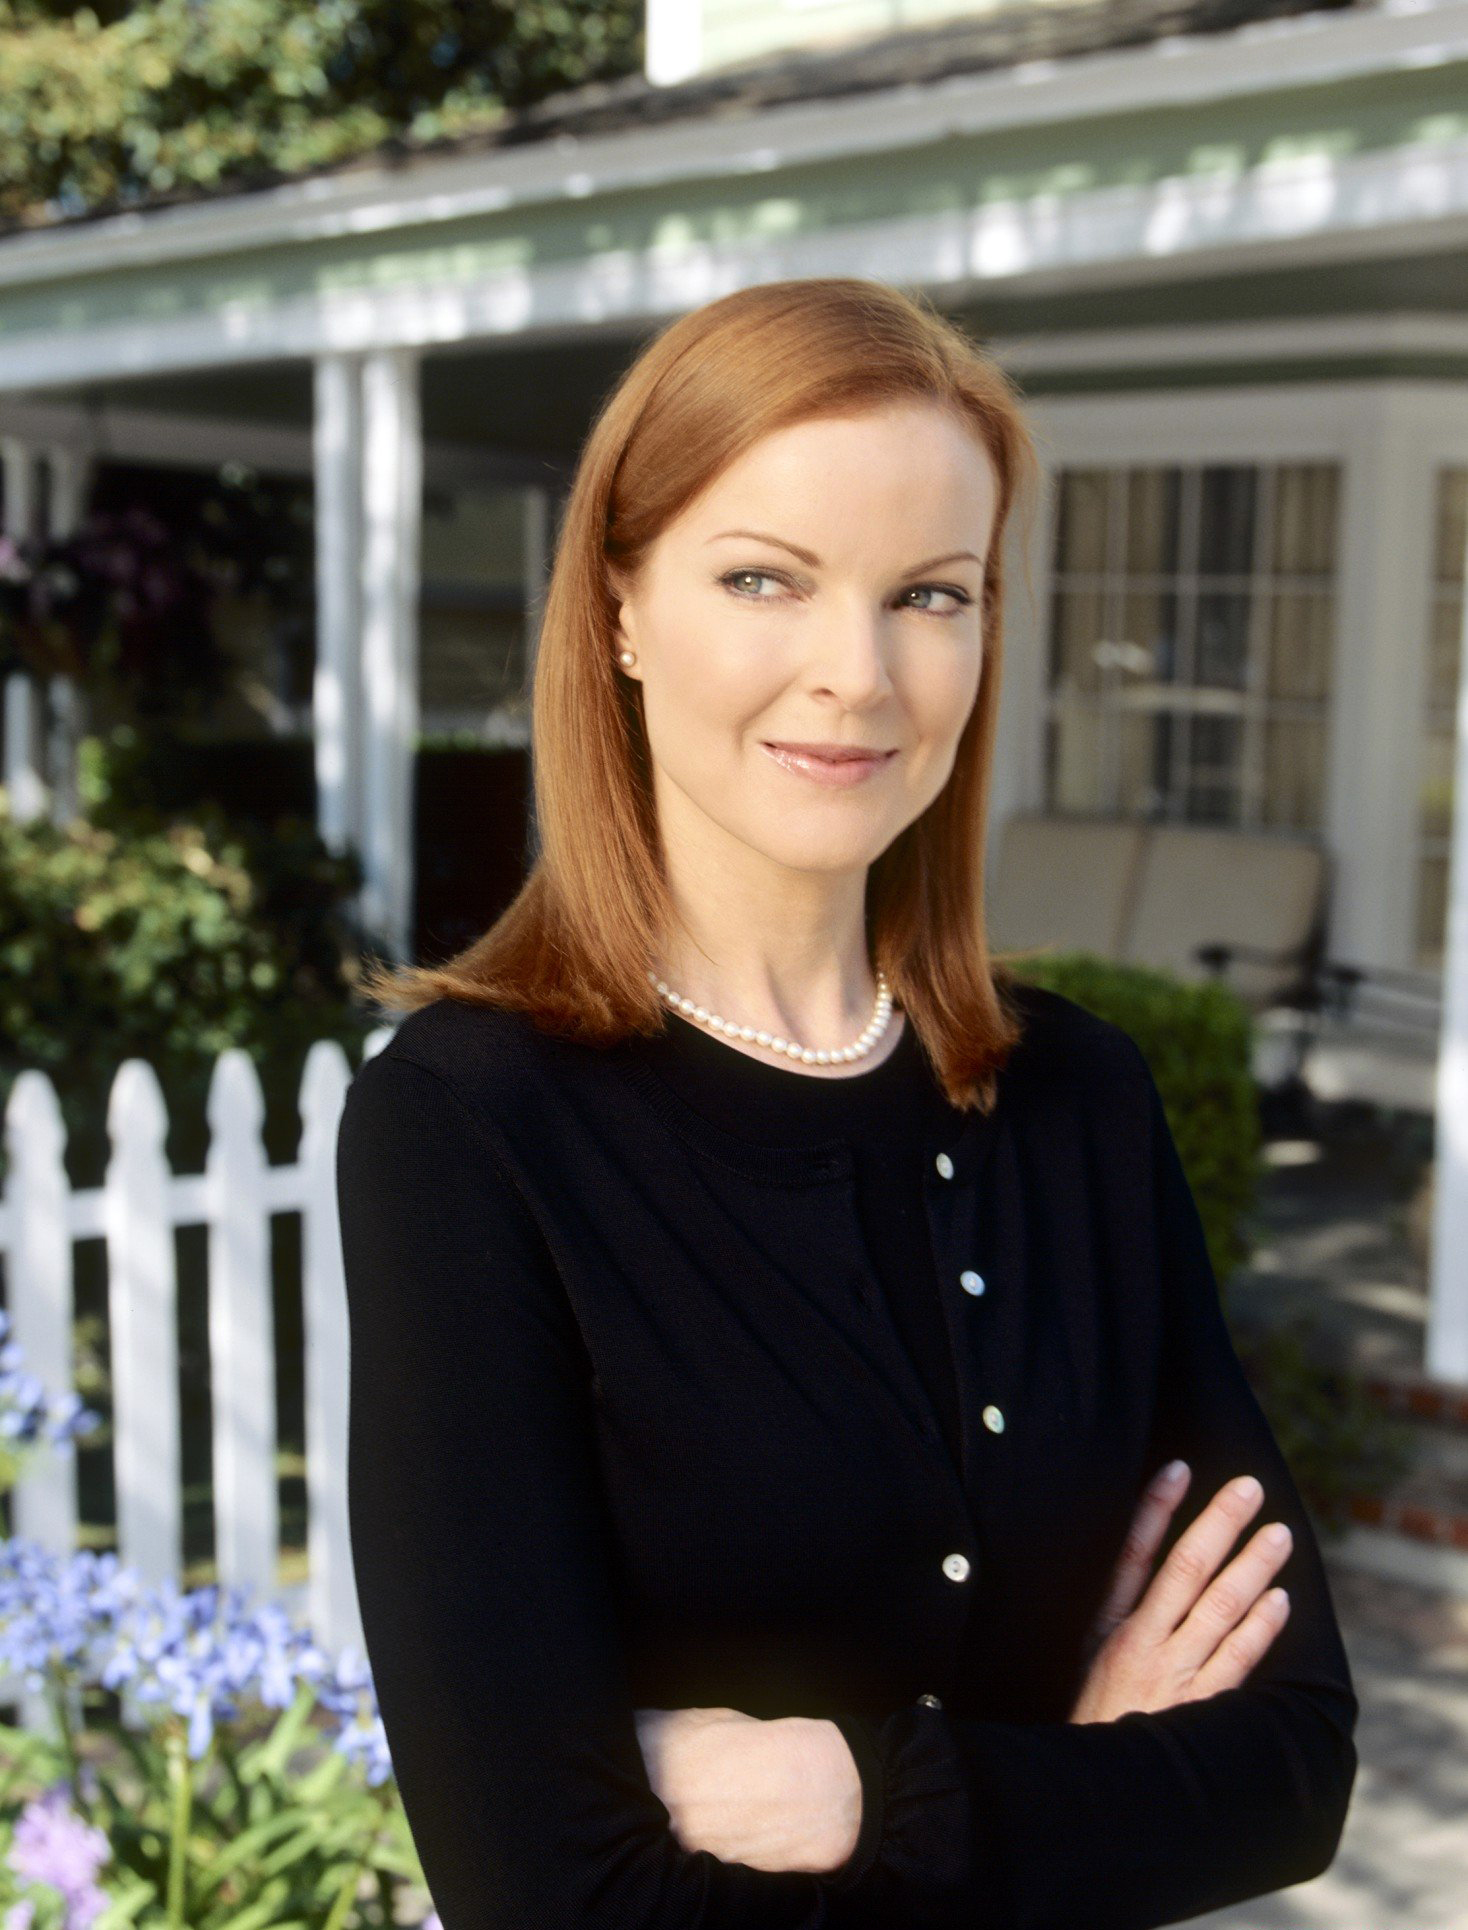 desperate housewives dvd s1 marcia cross bree 004 dvdbash dvdbash. Black Bedroom Furniture Sets. Home Design Ideas